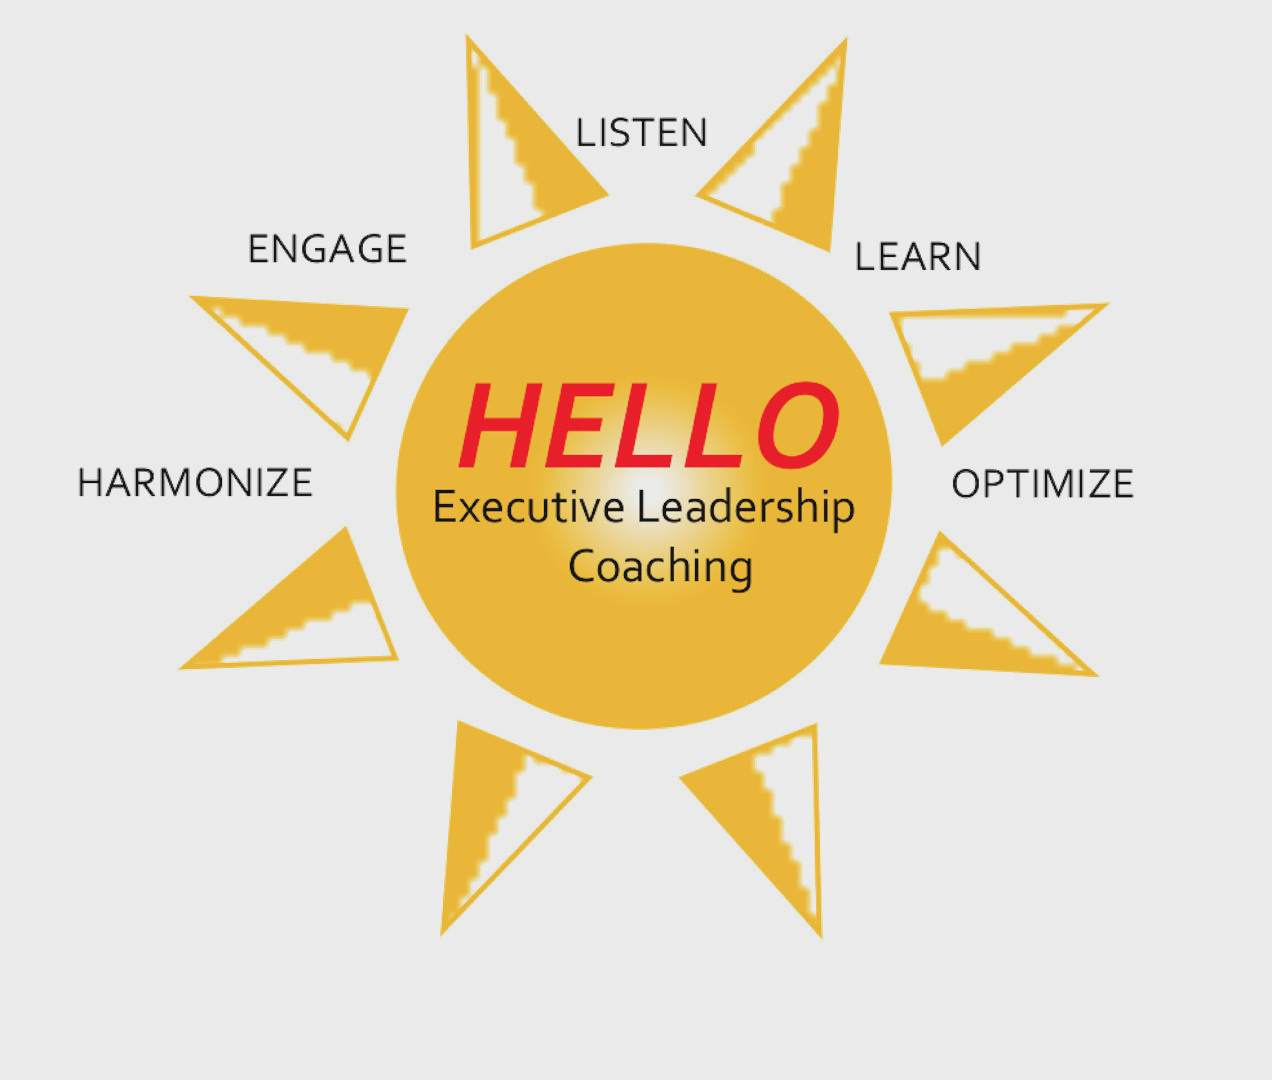 HELLO Executive Leadership Coaching